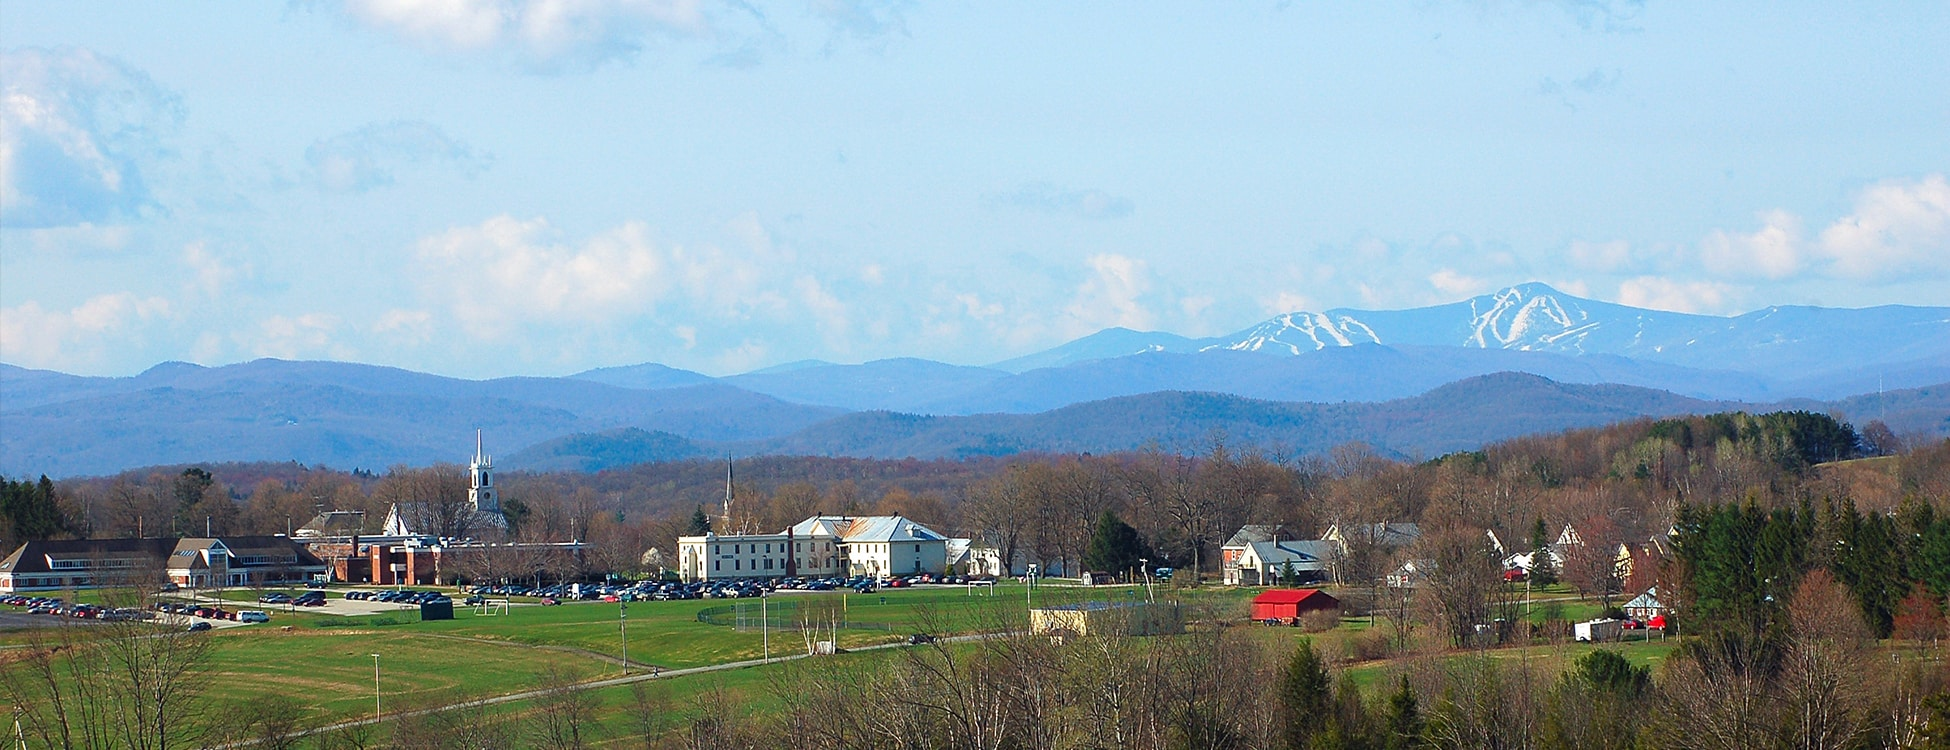 Randolph Center campus, Killington in background, landscape